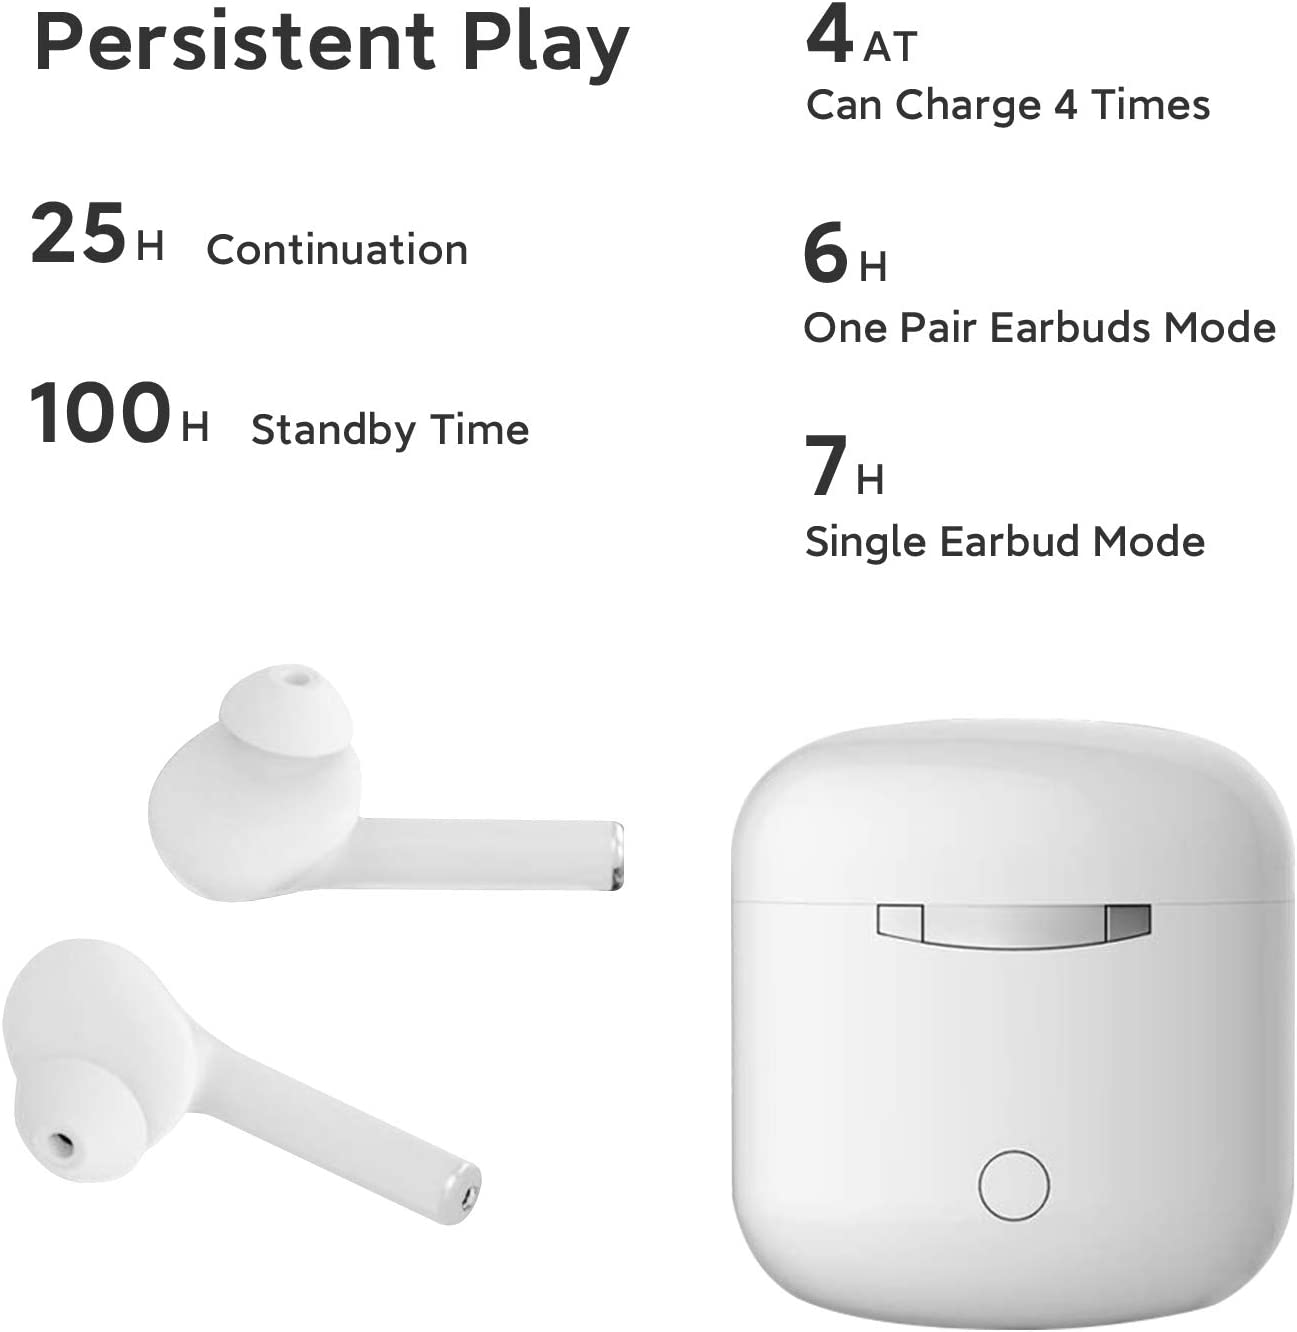 Wireless Headphones Aoslen Bluetooth Headphones In Ear 5.0 Wireless Earphones Touch Control Earbuds 20H Playtime Built-in Dual Mic//HiFi stereo With Charging Case for IOS Android Samsung Huawei